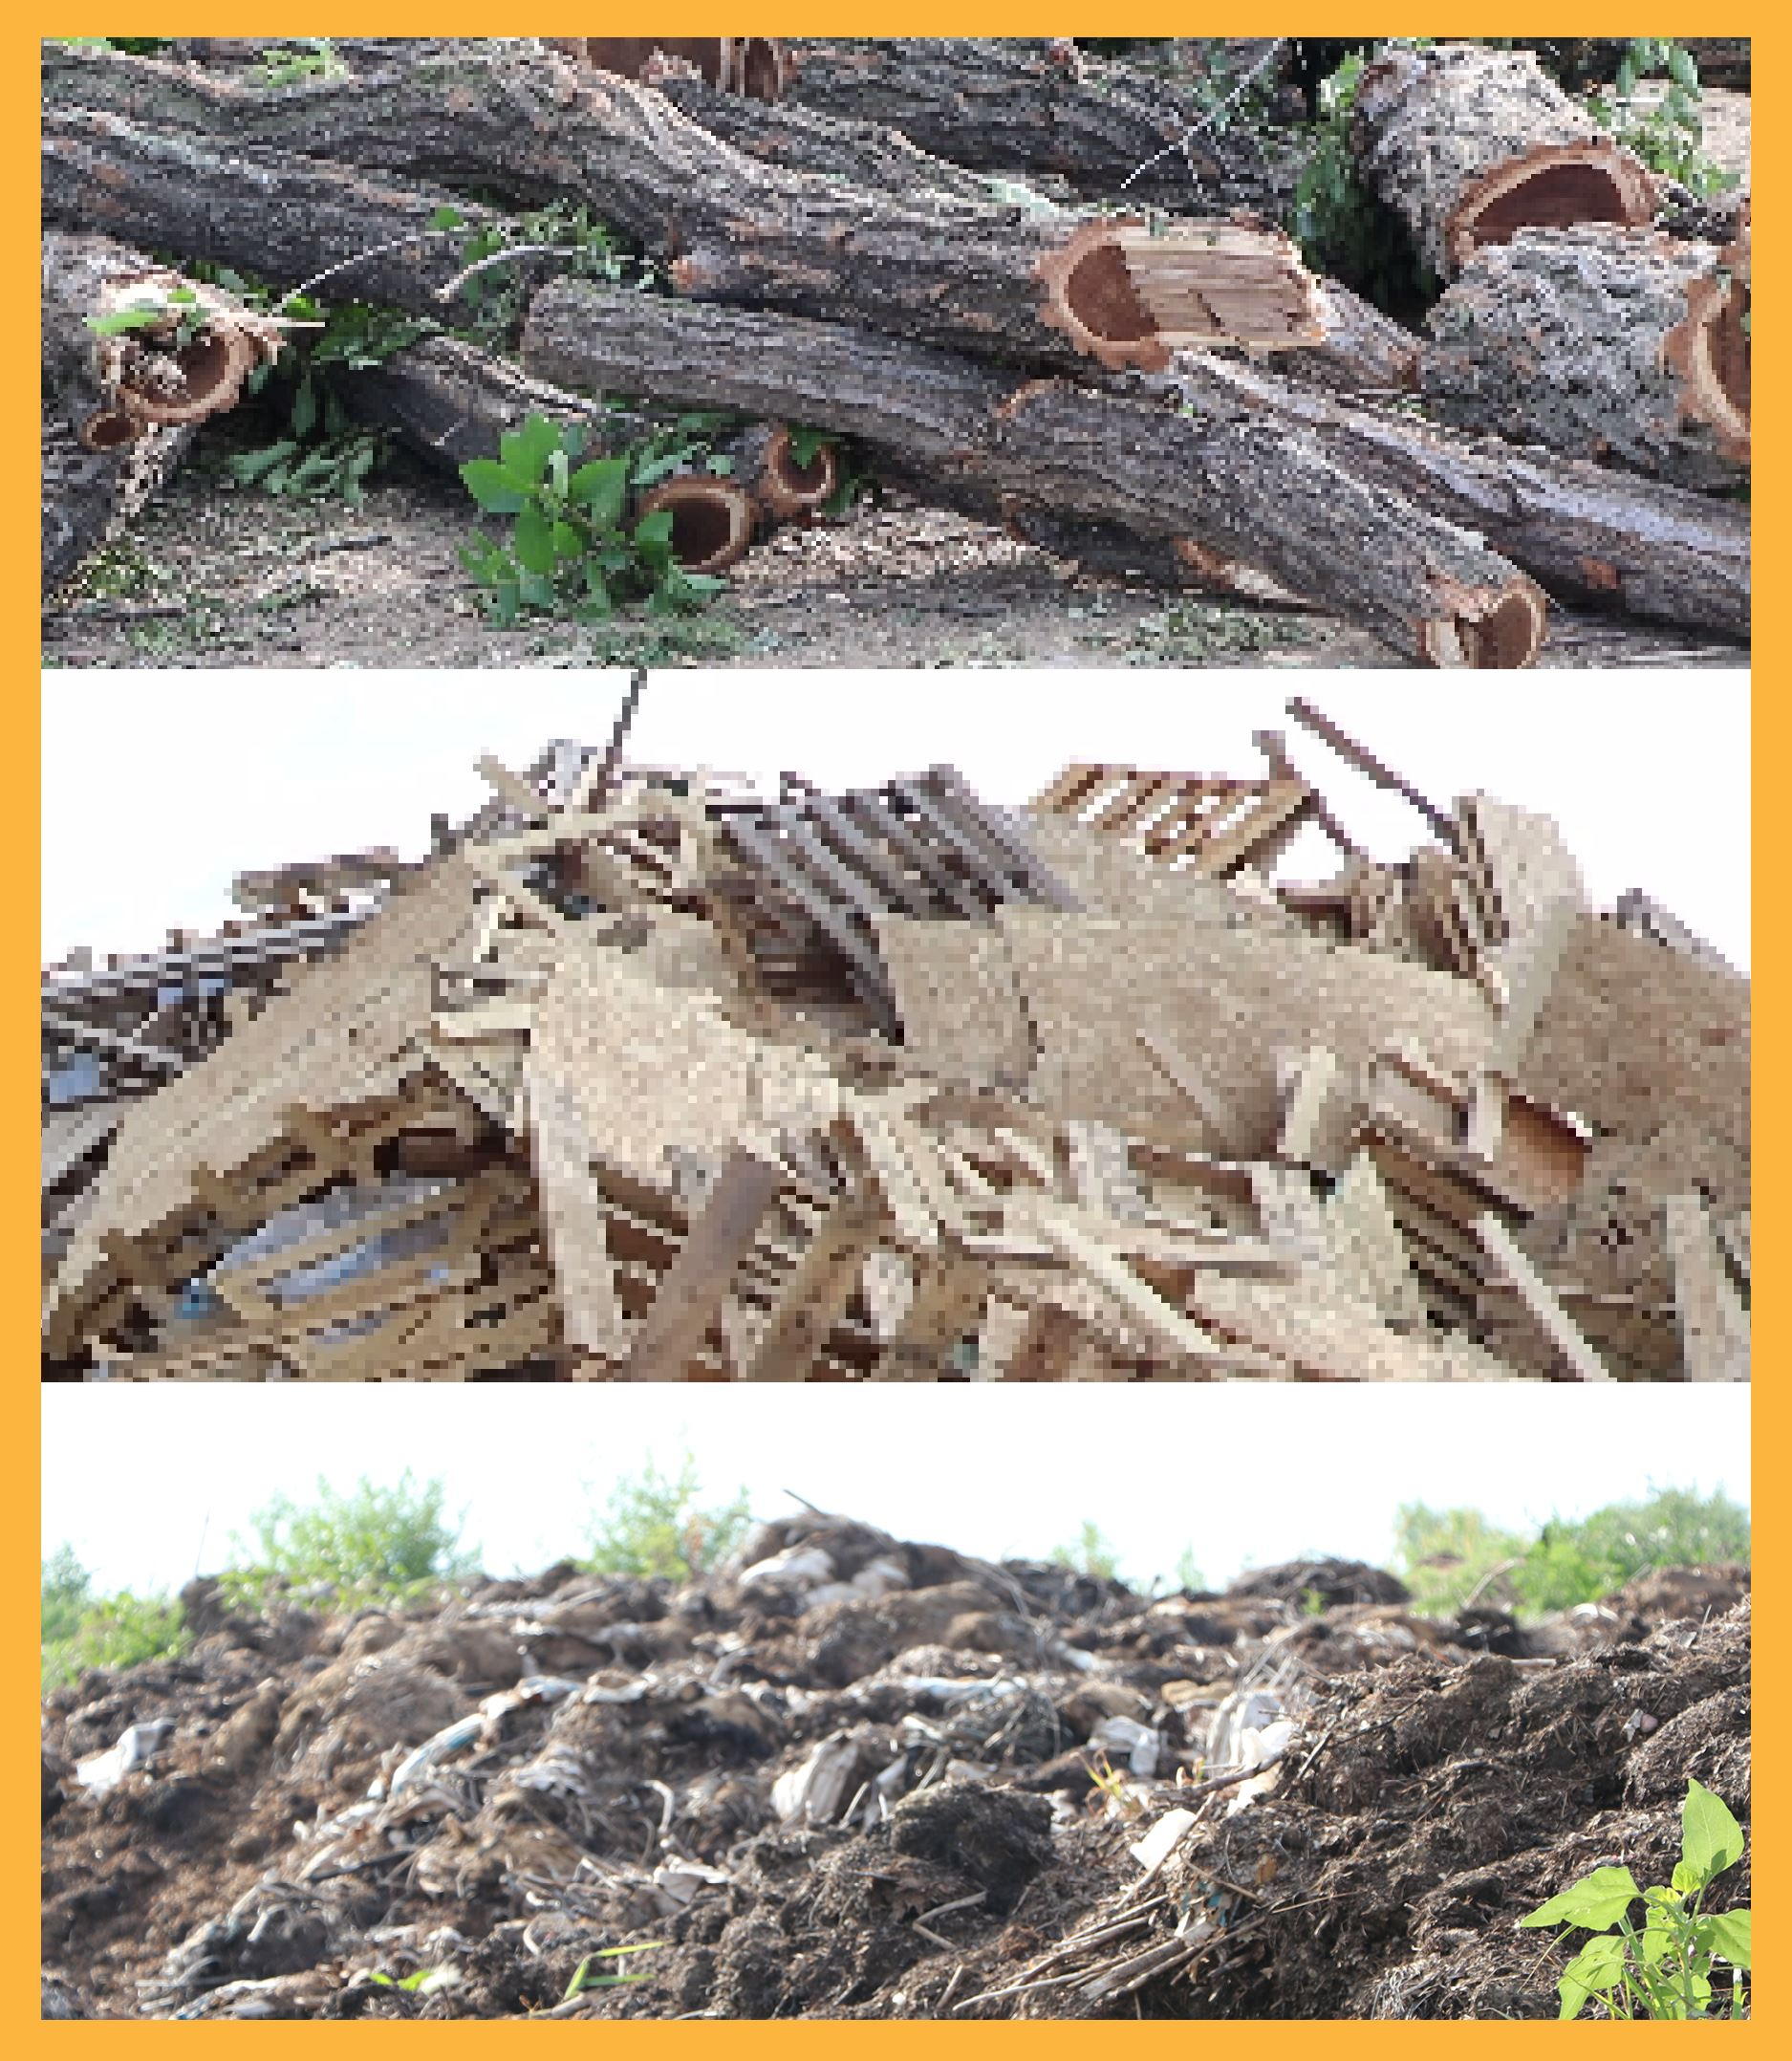 Photo of tree branches, lumber, and compost